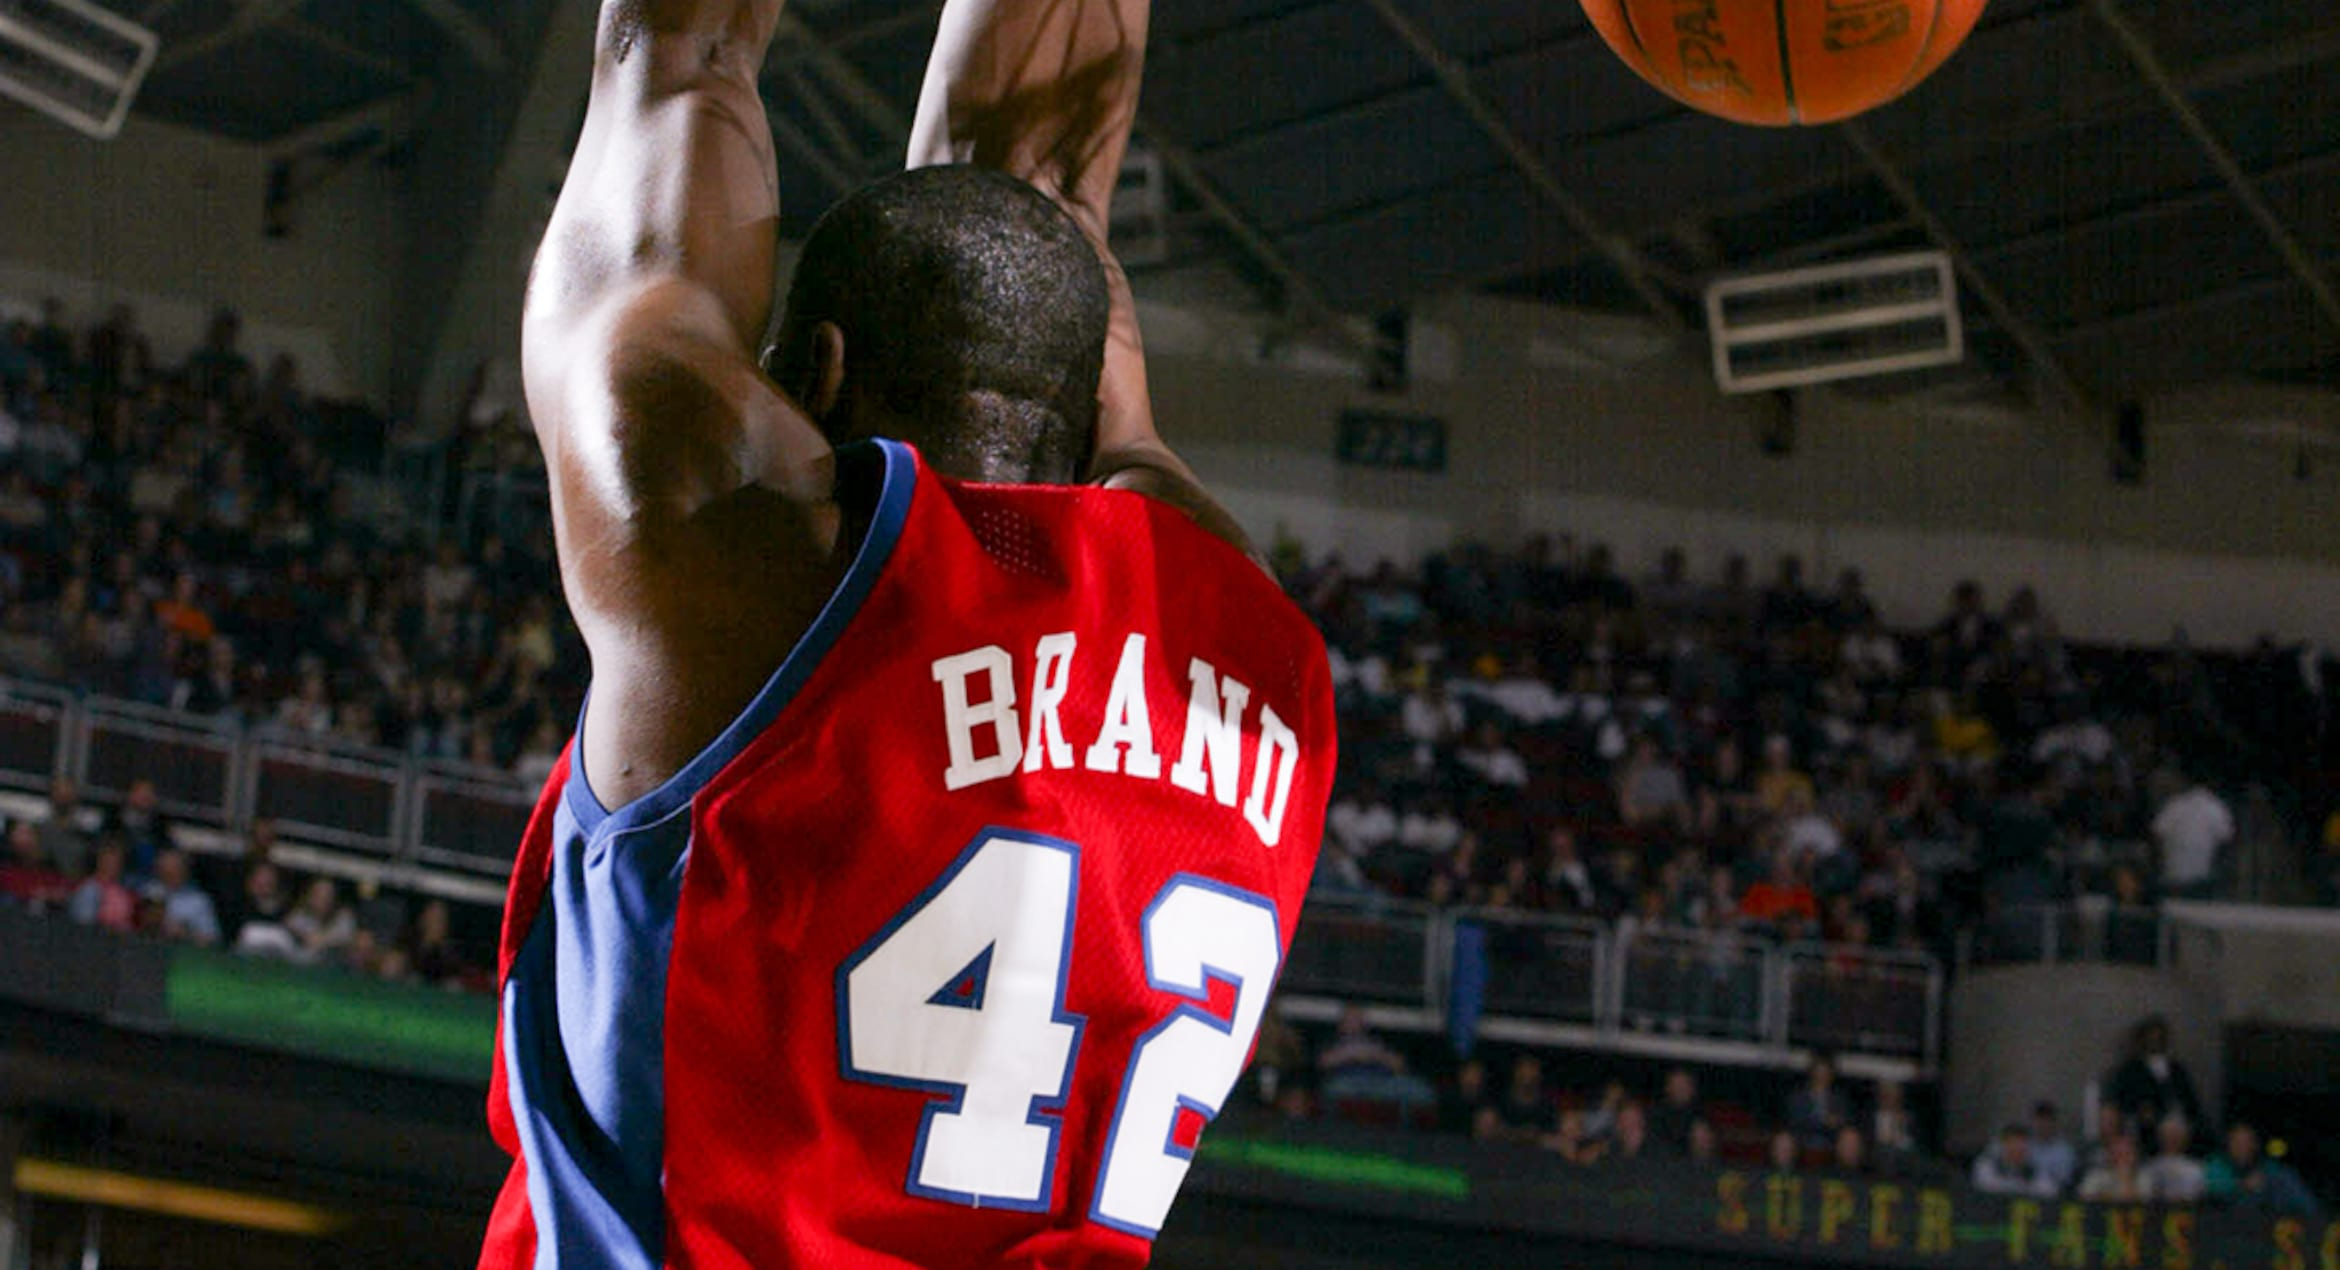 Former Clippers Star Elton Brand Retires